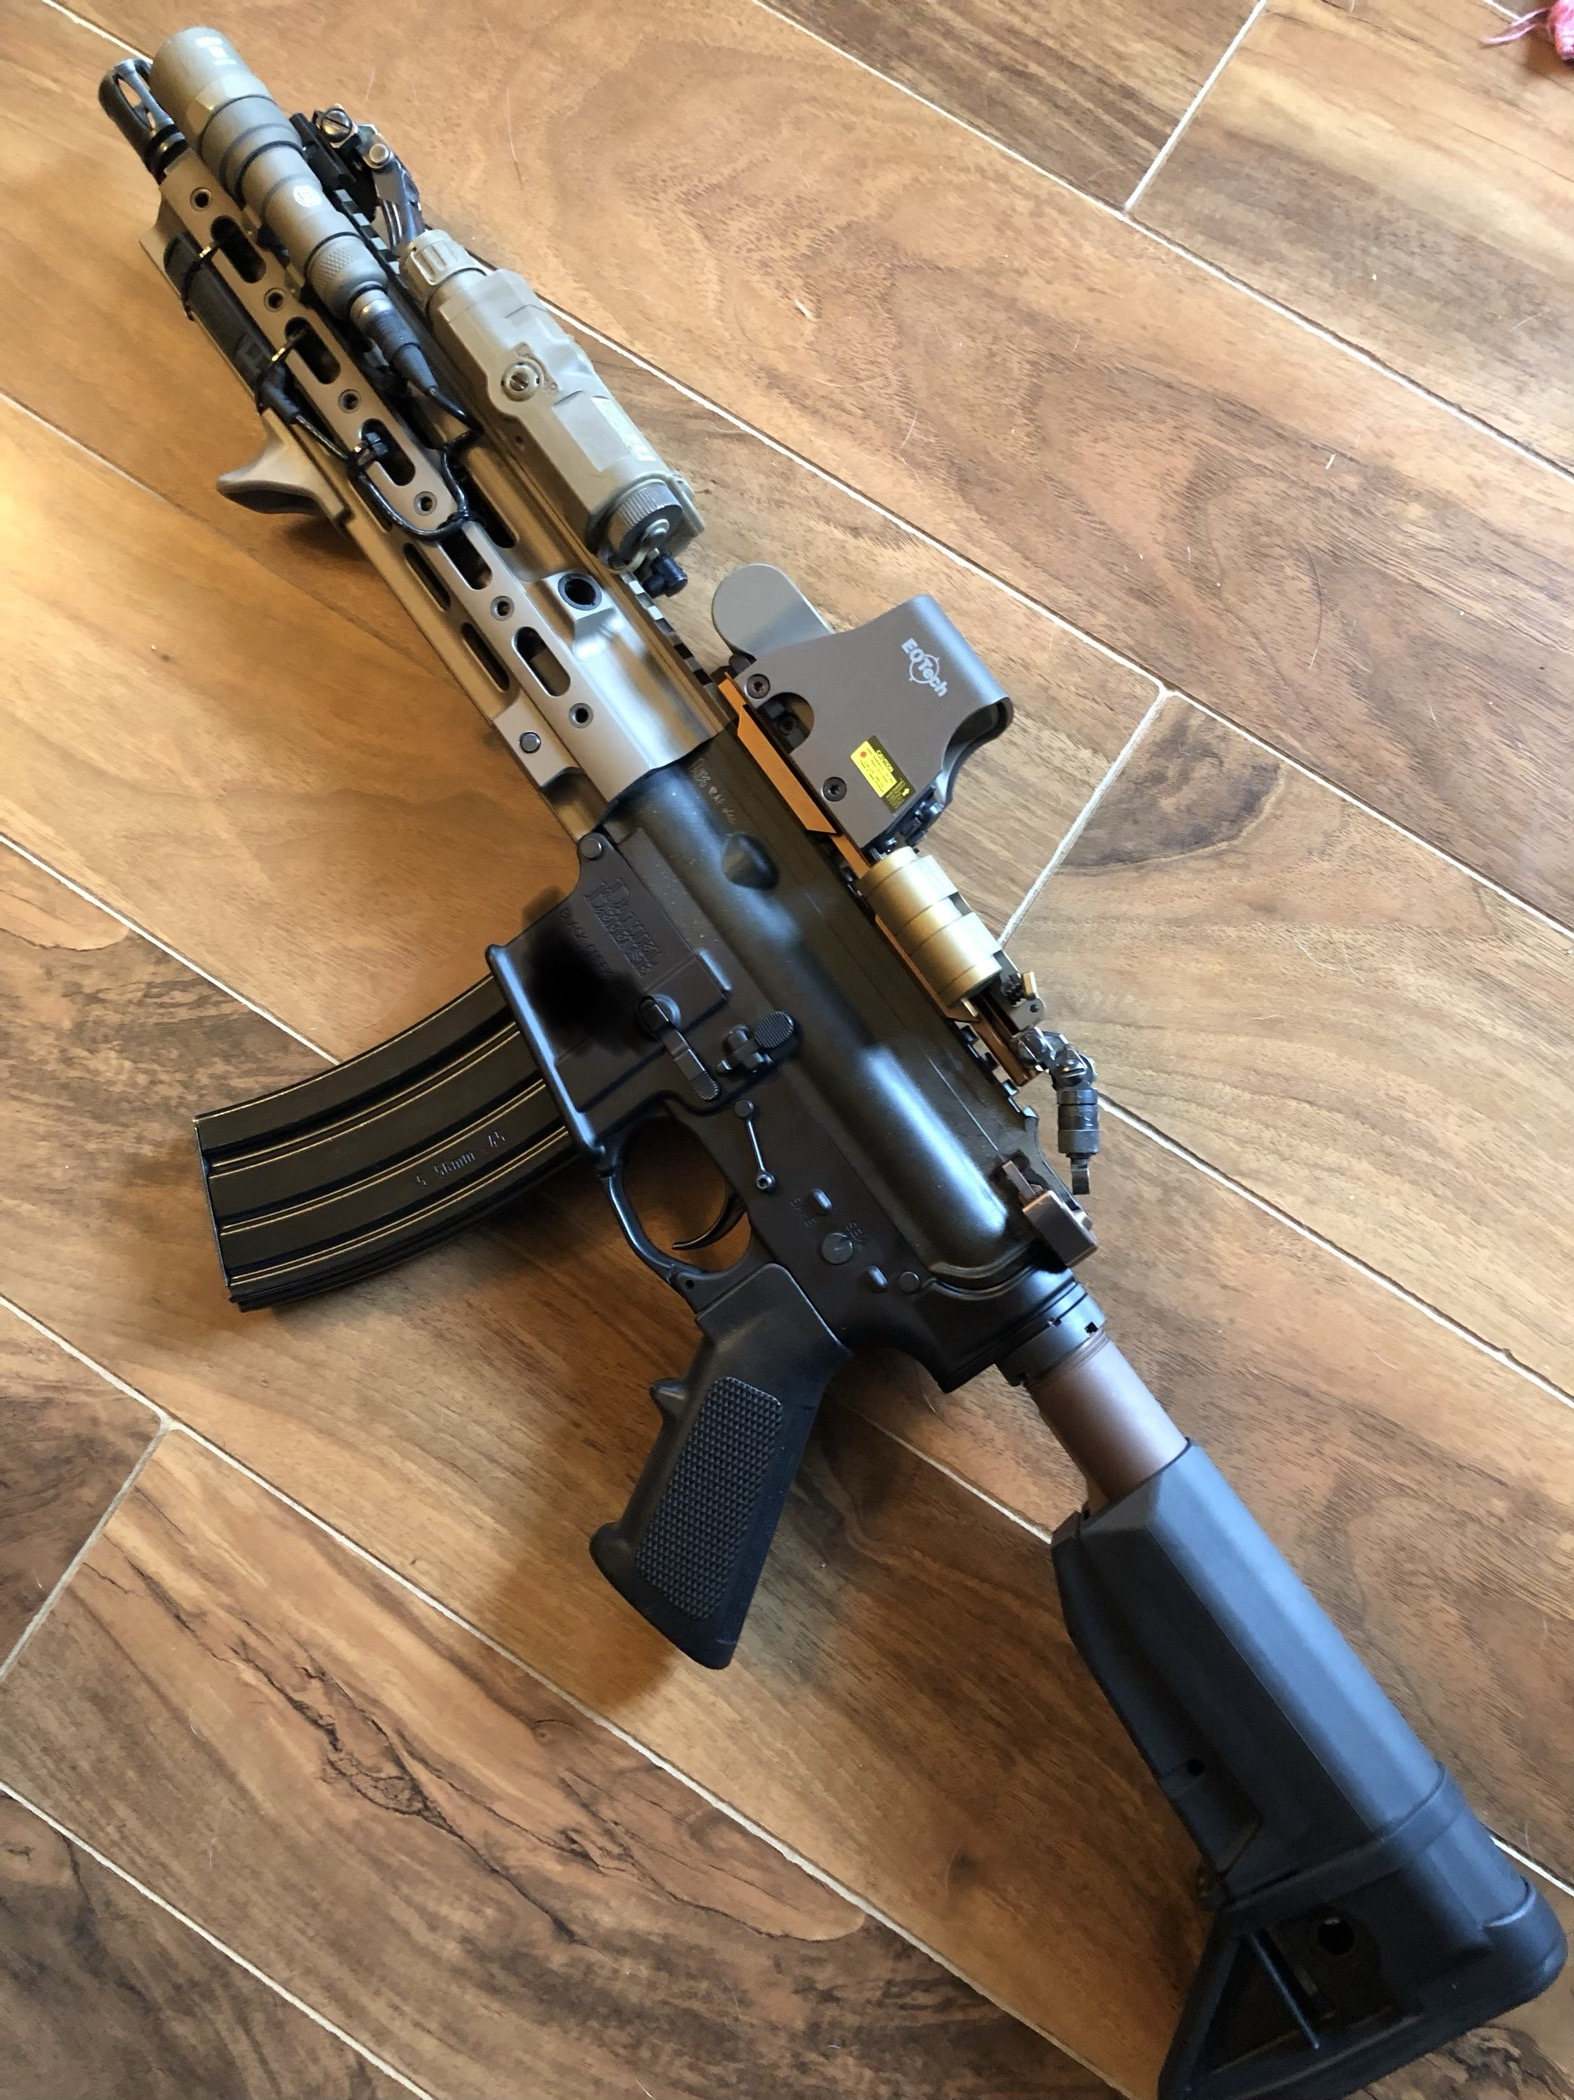 HK416 Owners Picture Thread (genuine HK416's only please)-3567421c-df64-409a-8ab8-6fece61b4fc4_1538004623238.jpeg